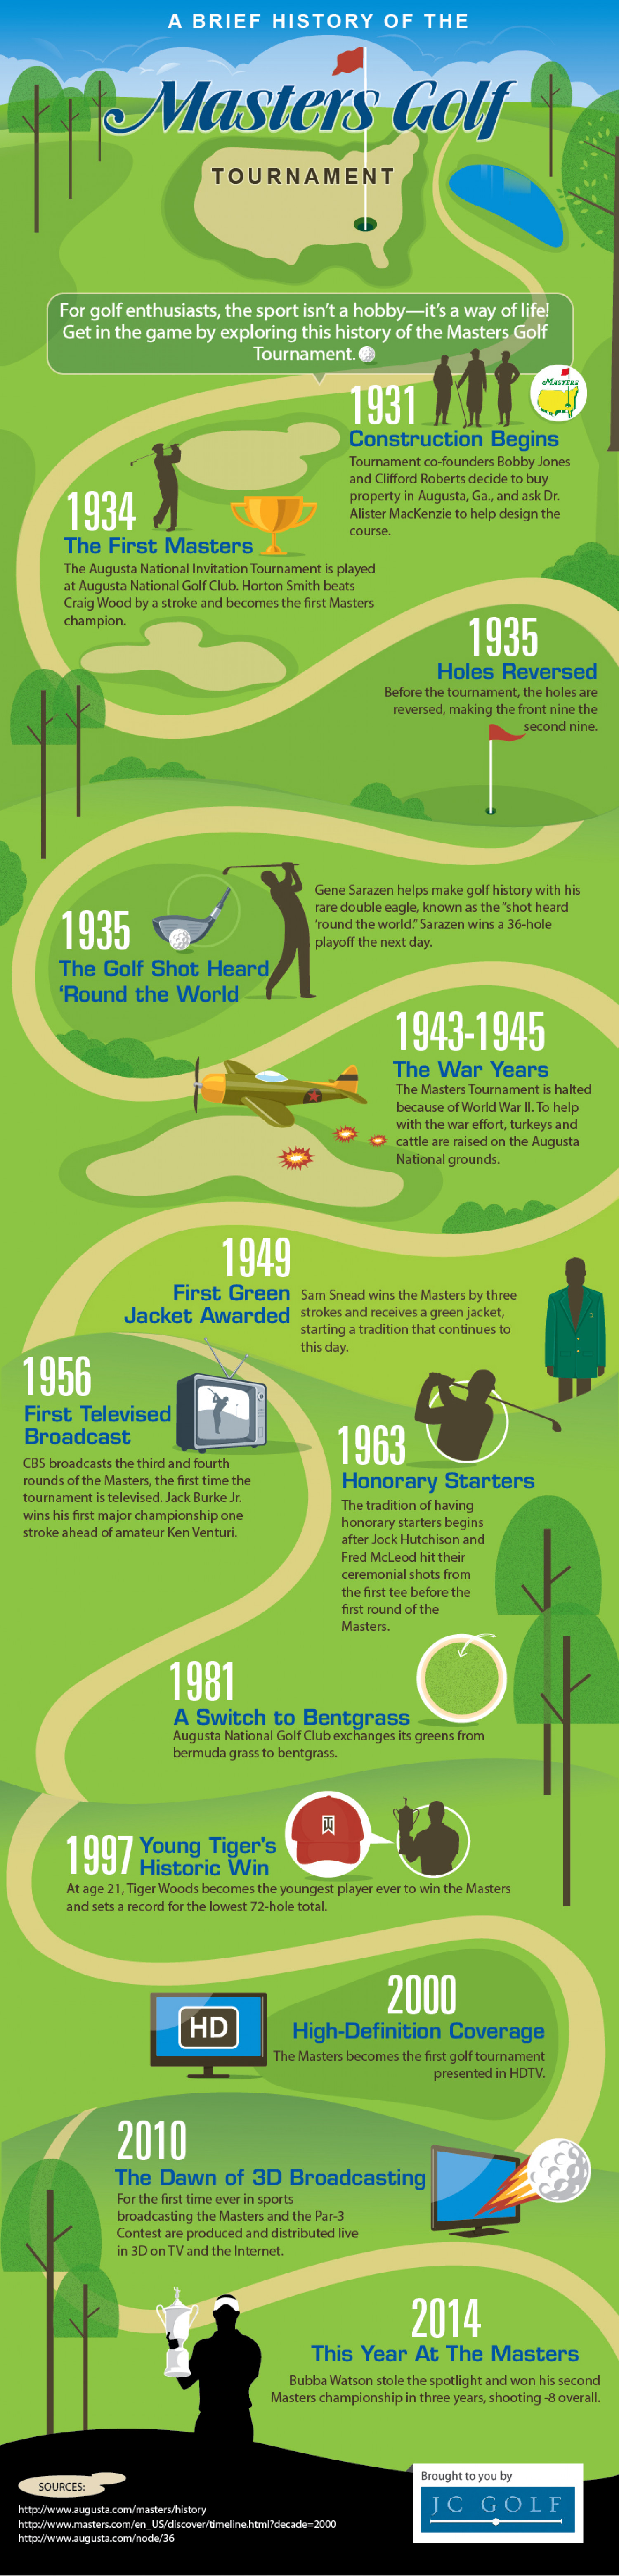 A Brief History of the Masters Golf Tournament  Infographic